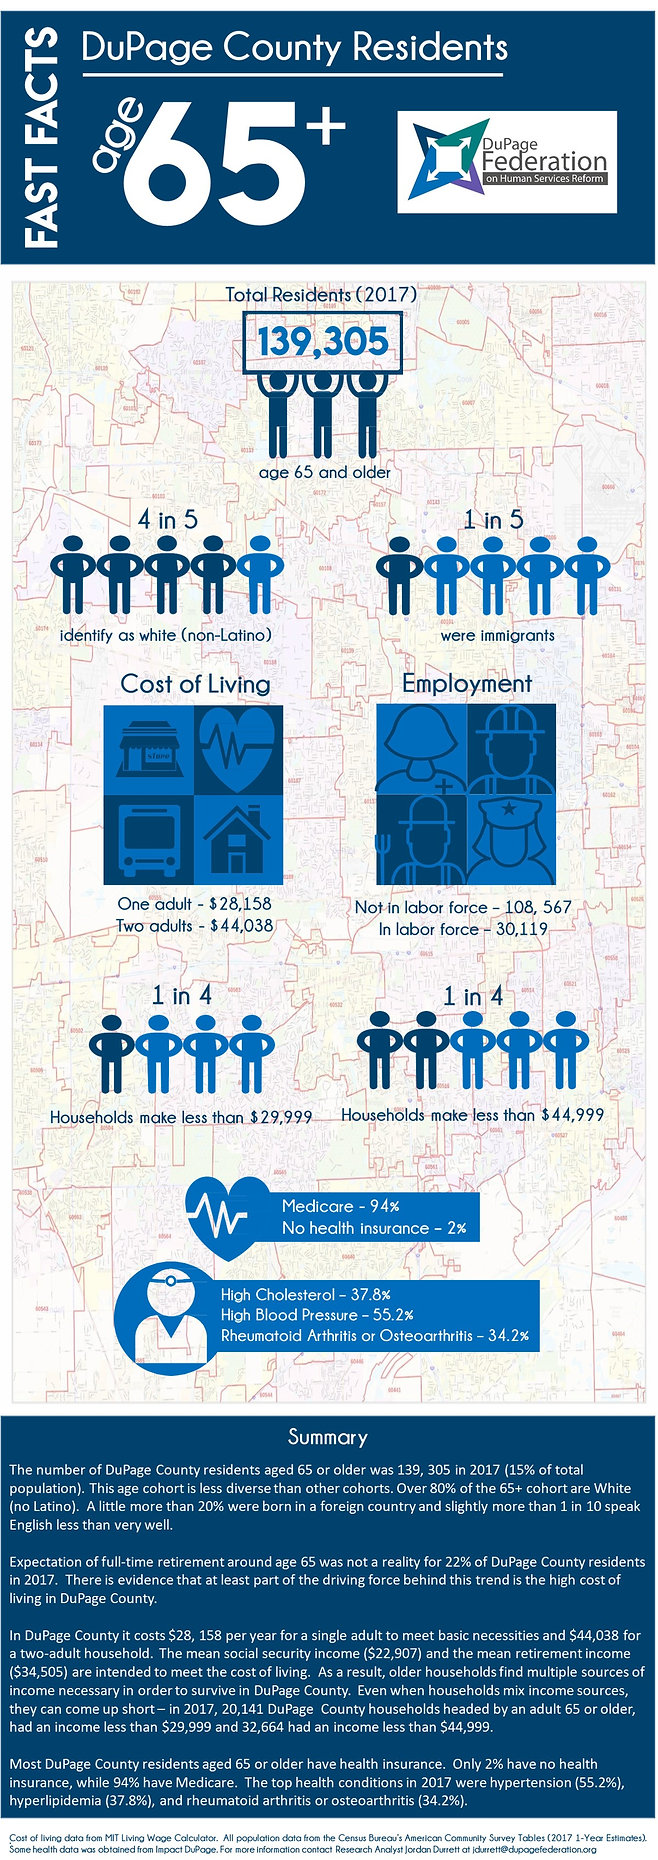 2019-09-25 - DuPage Co. Residents (65+).